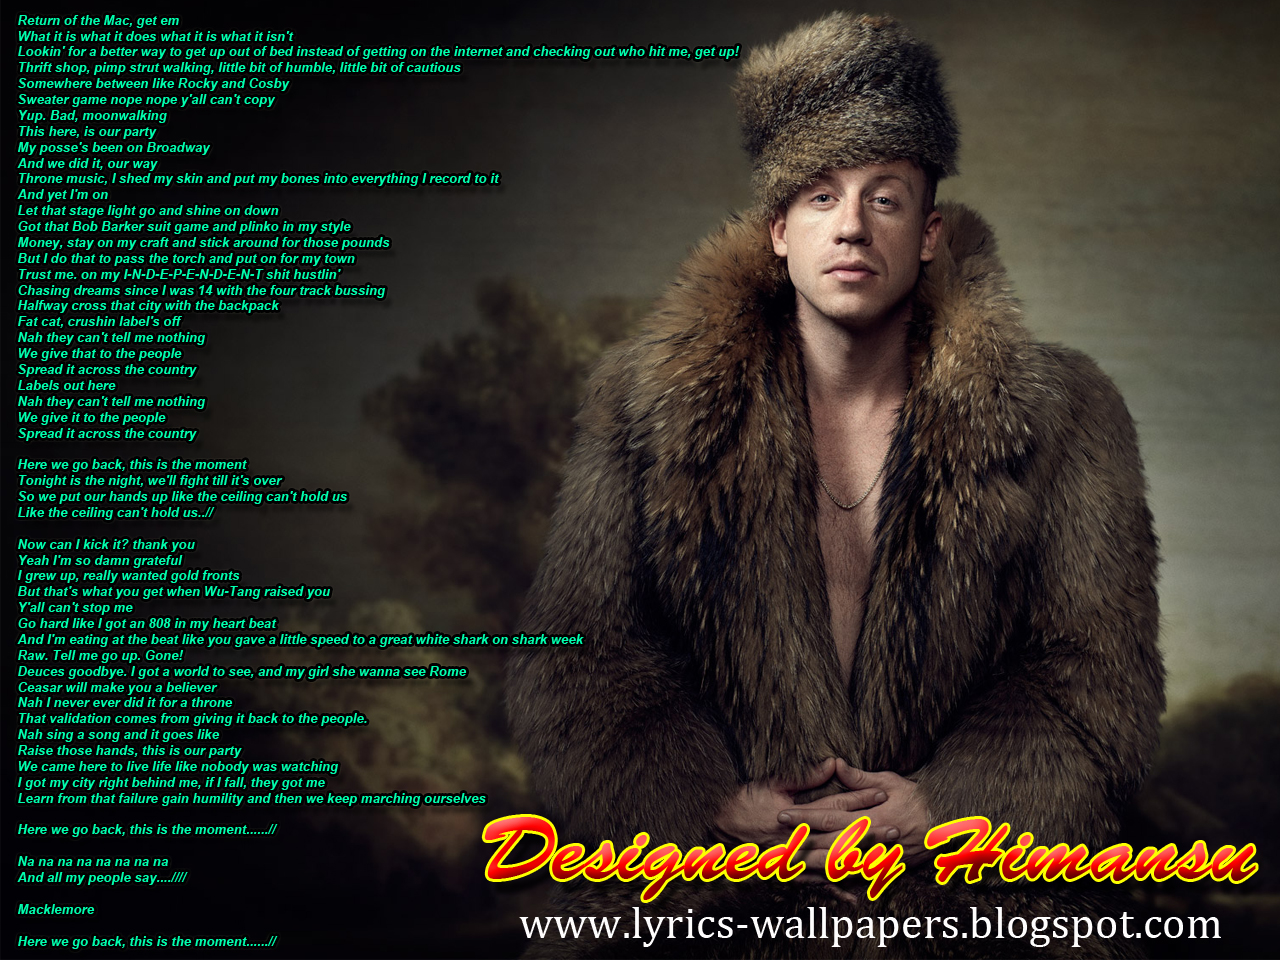 Lyrics Wallpapers: Macklemore